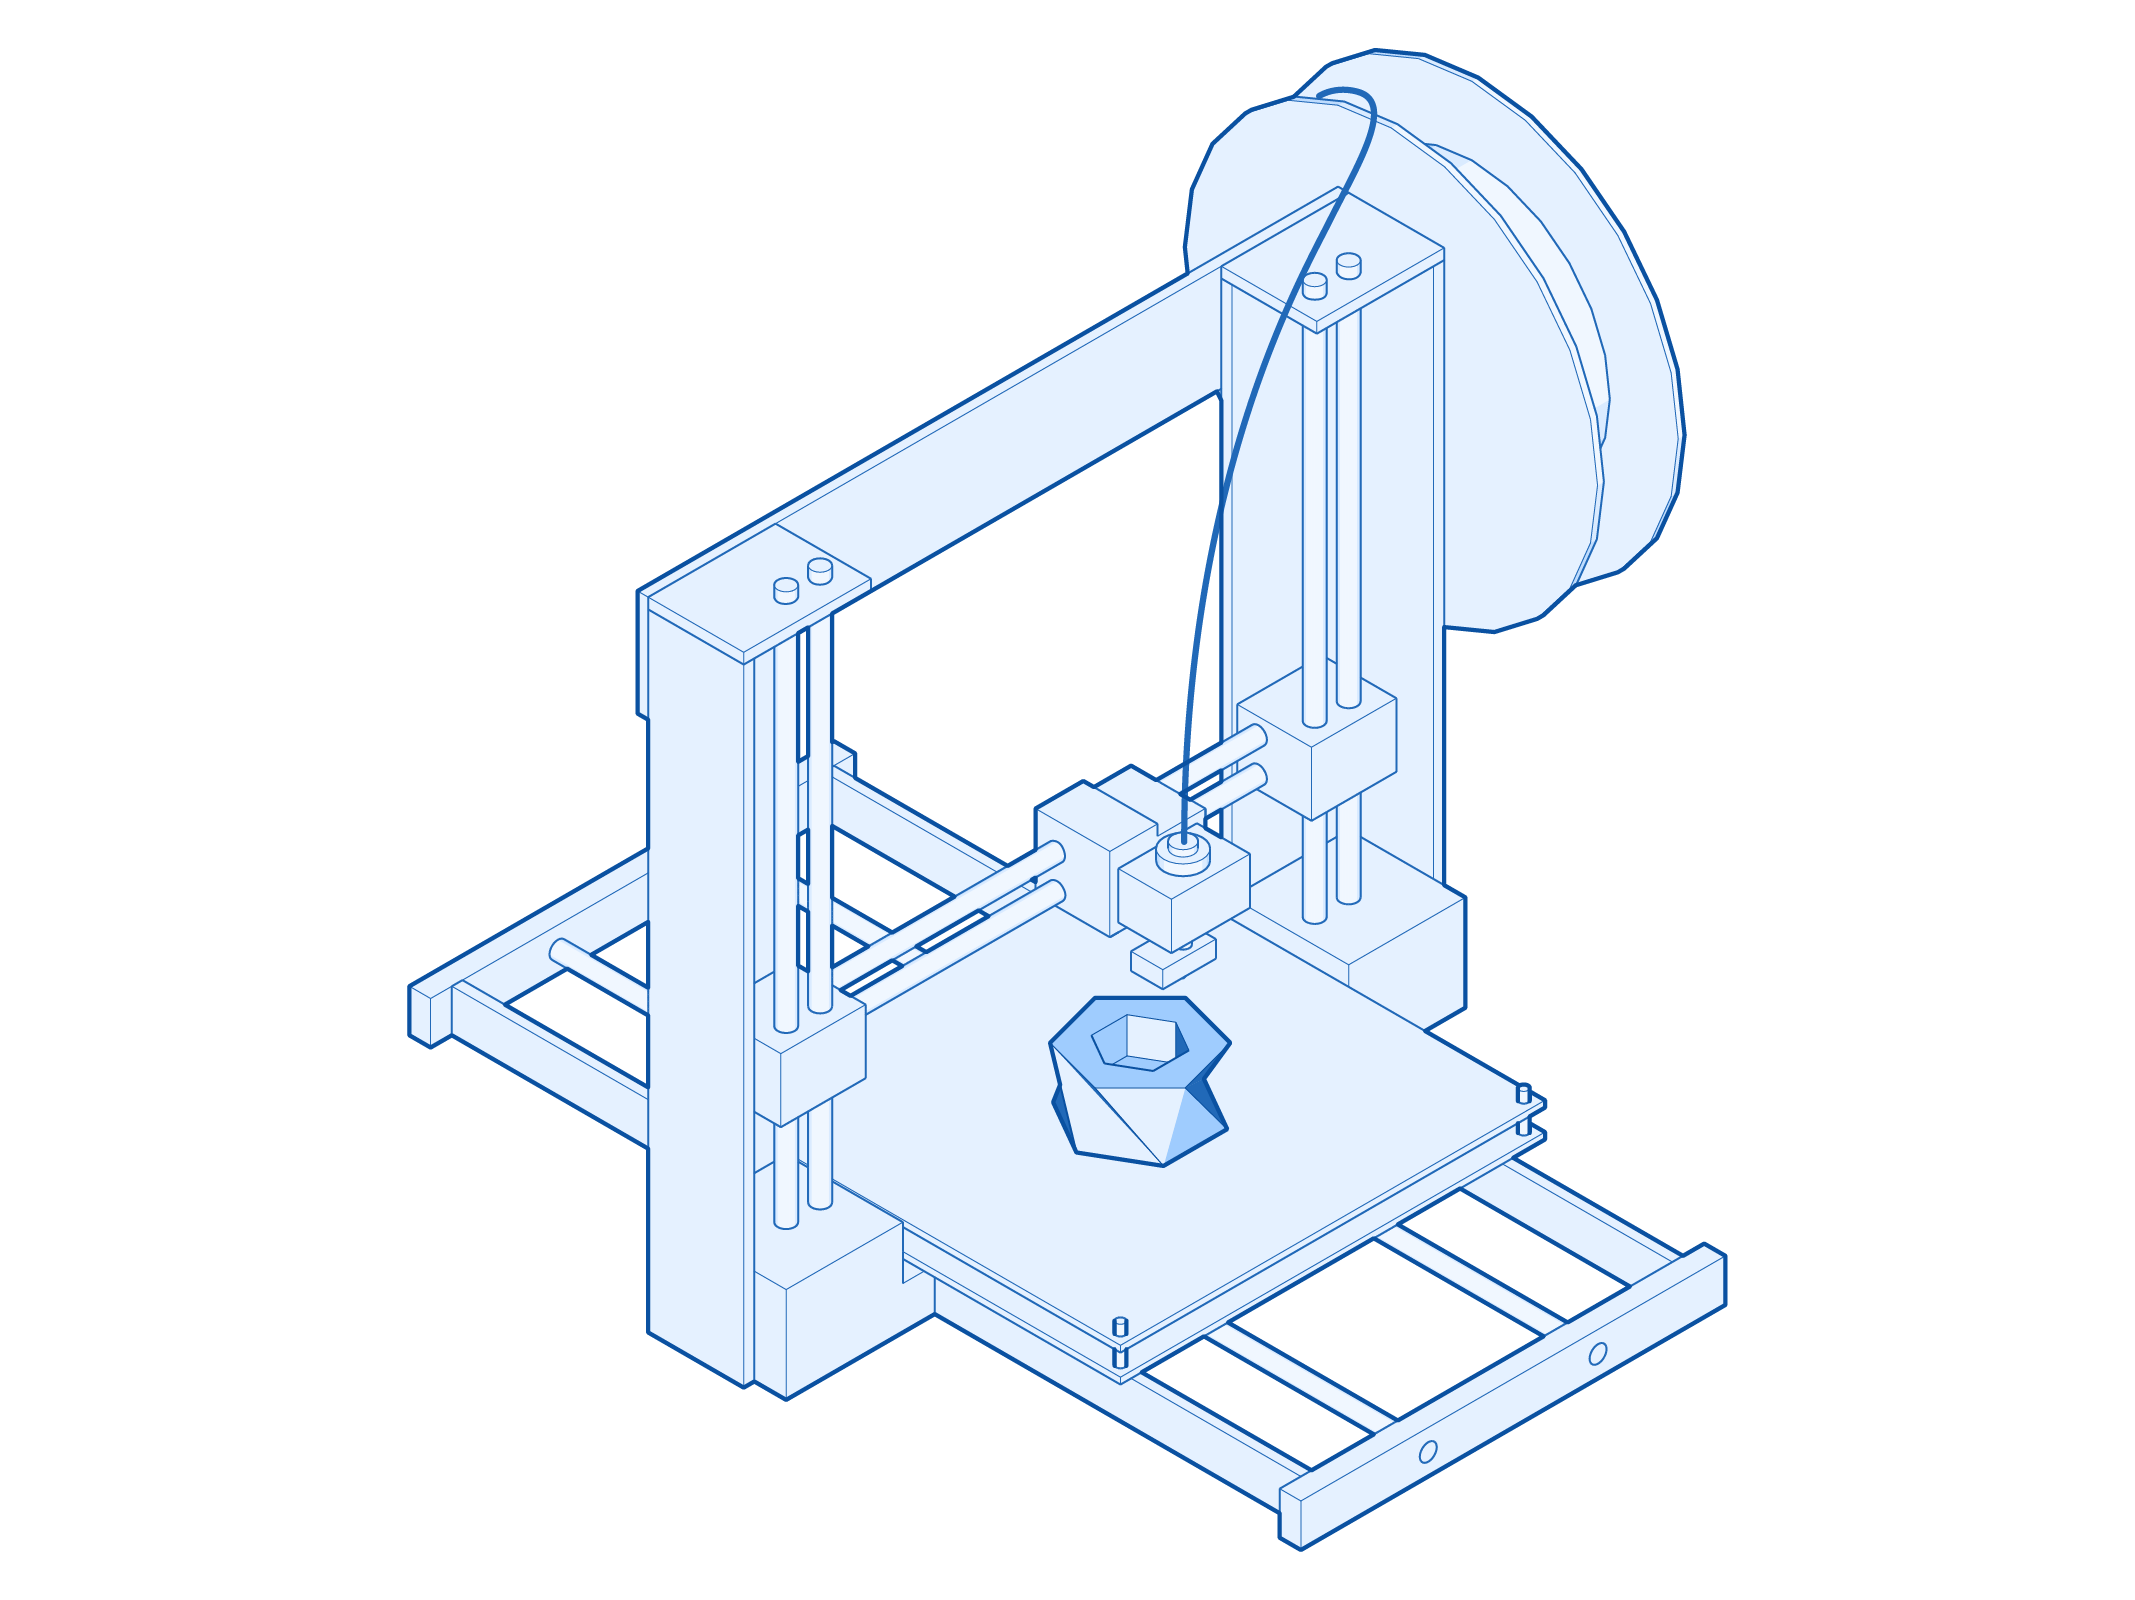 3D Printing - Dimensions - 250(L) x 250(W) x 200(H) mmFiletype - .STLNotes -Our machines use only PLA. Special requests are available.